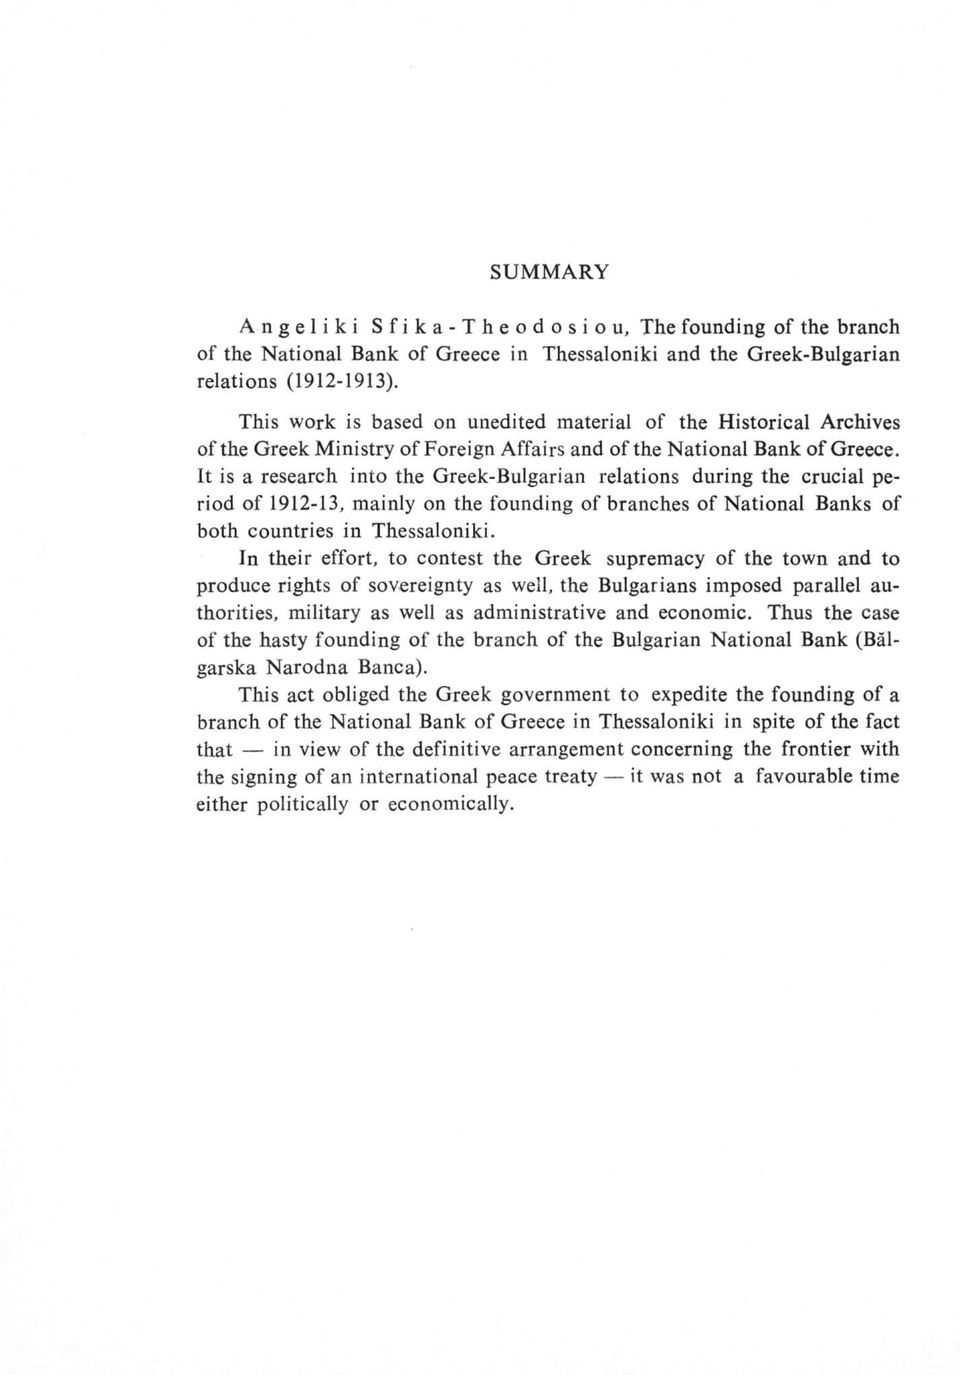 It is a research into the Greek-Bulgarian relations during the crucial period of 1912-13, mainly on the founding of branches of National Banks of both countries in Thessaloniki.